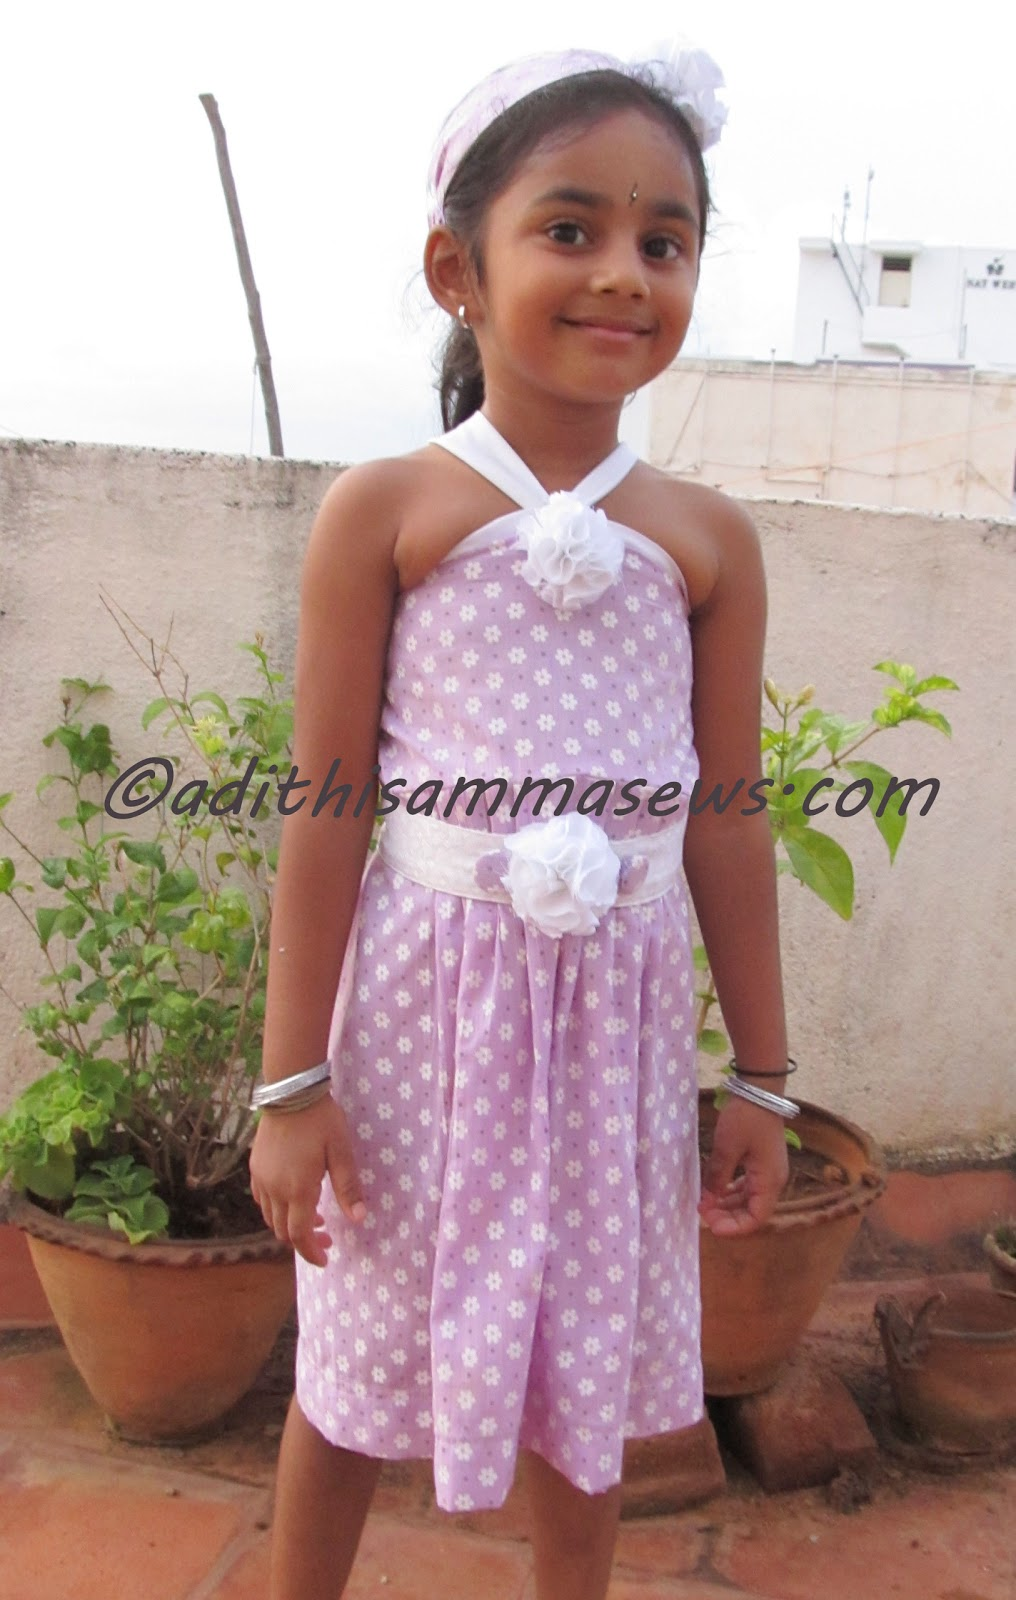 Adithis amma sews cute confessions of a sew addict back to entire dress set with headband and belt jeuxipadfo Images